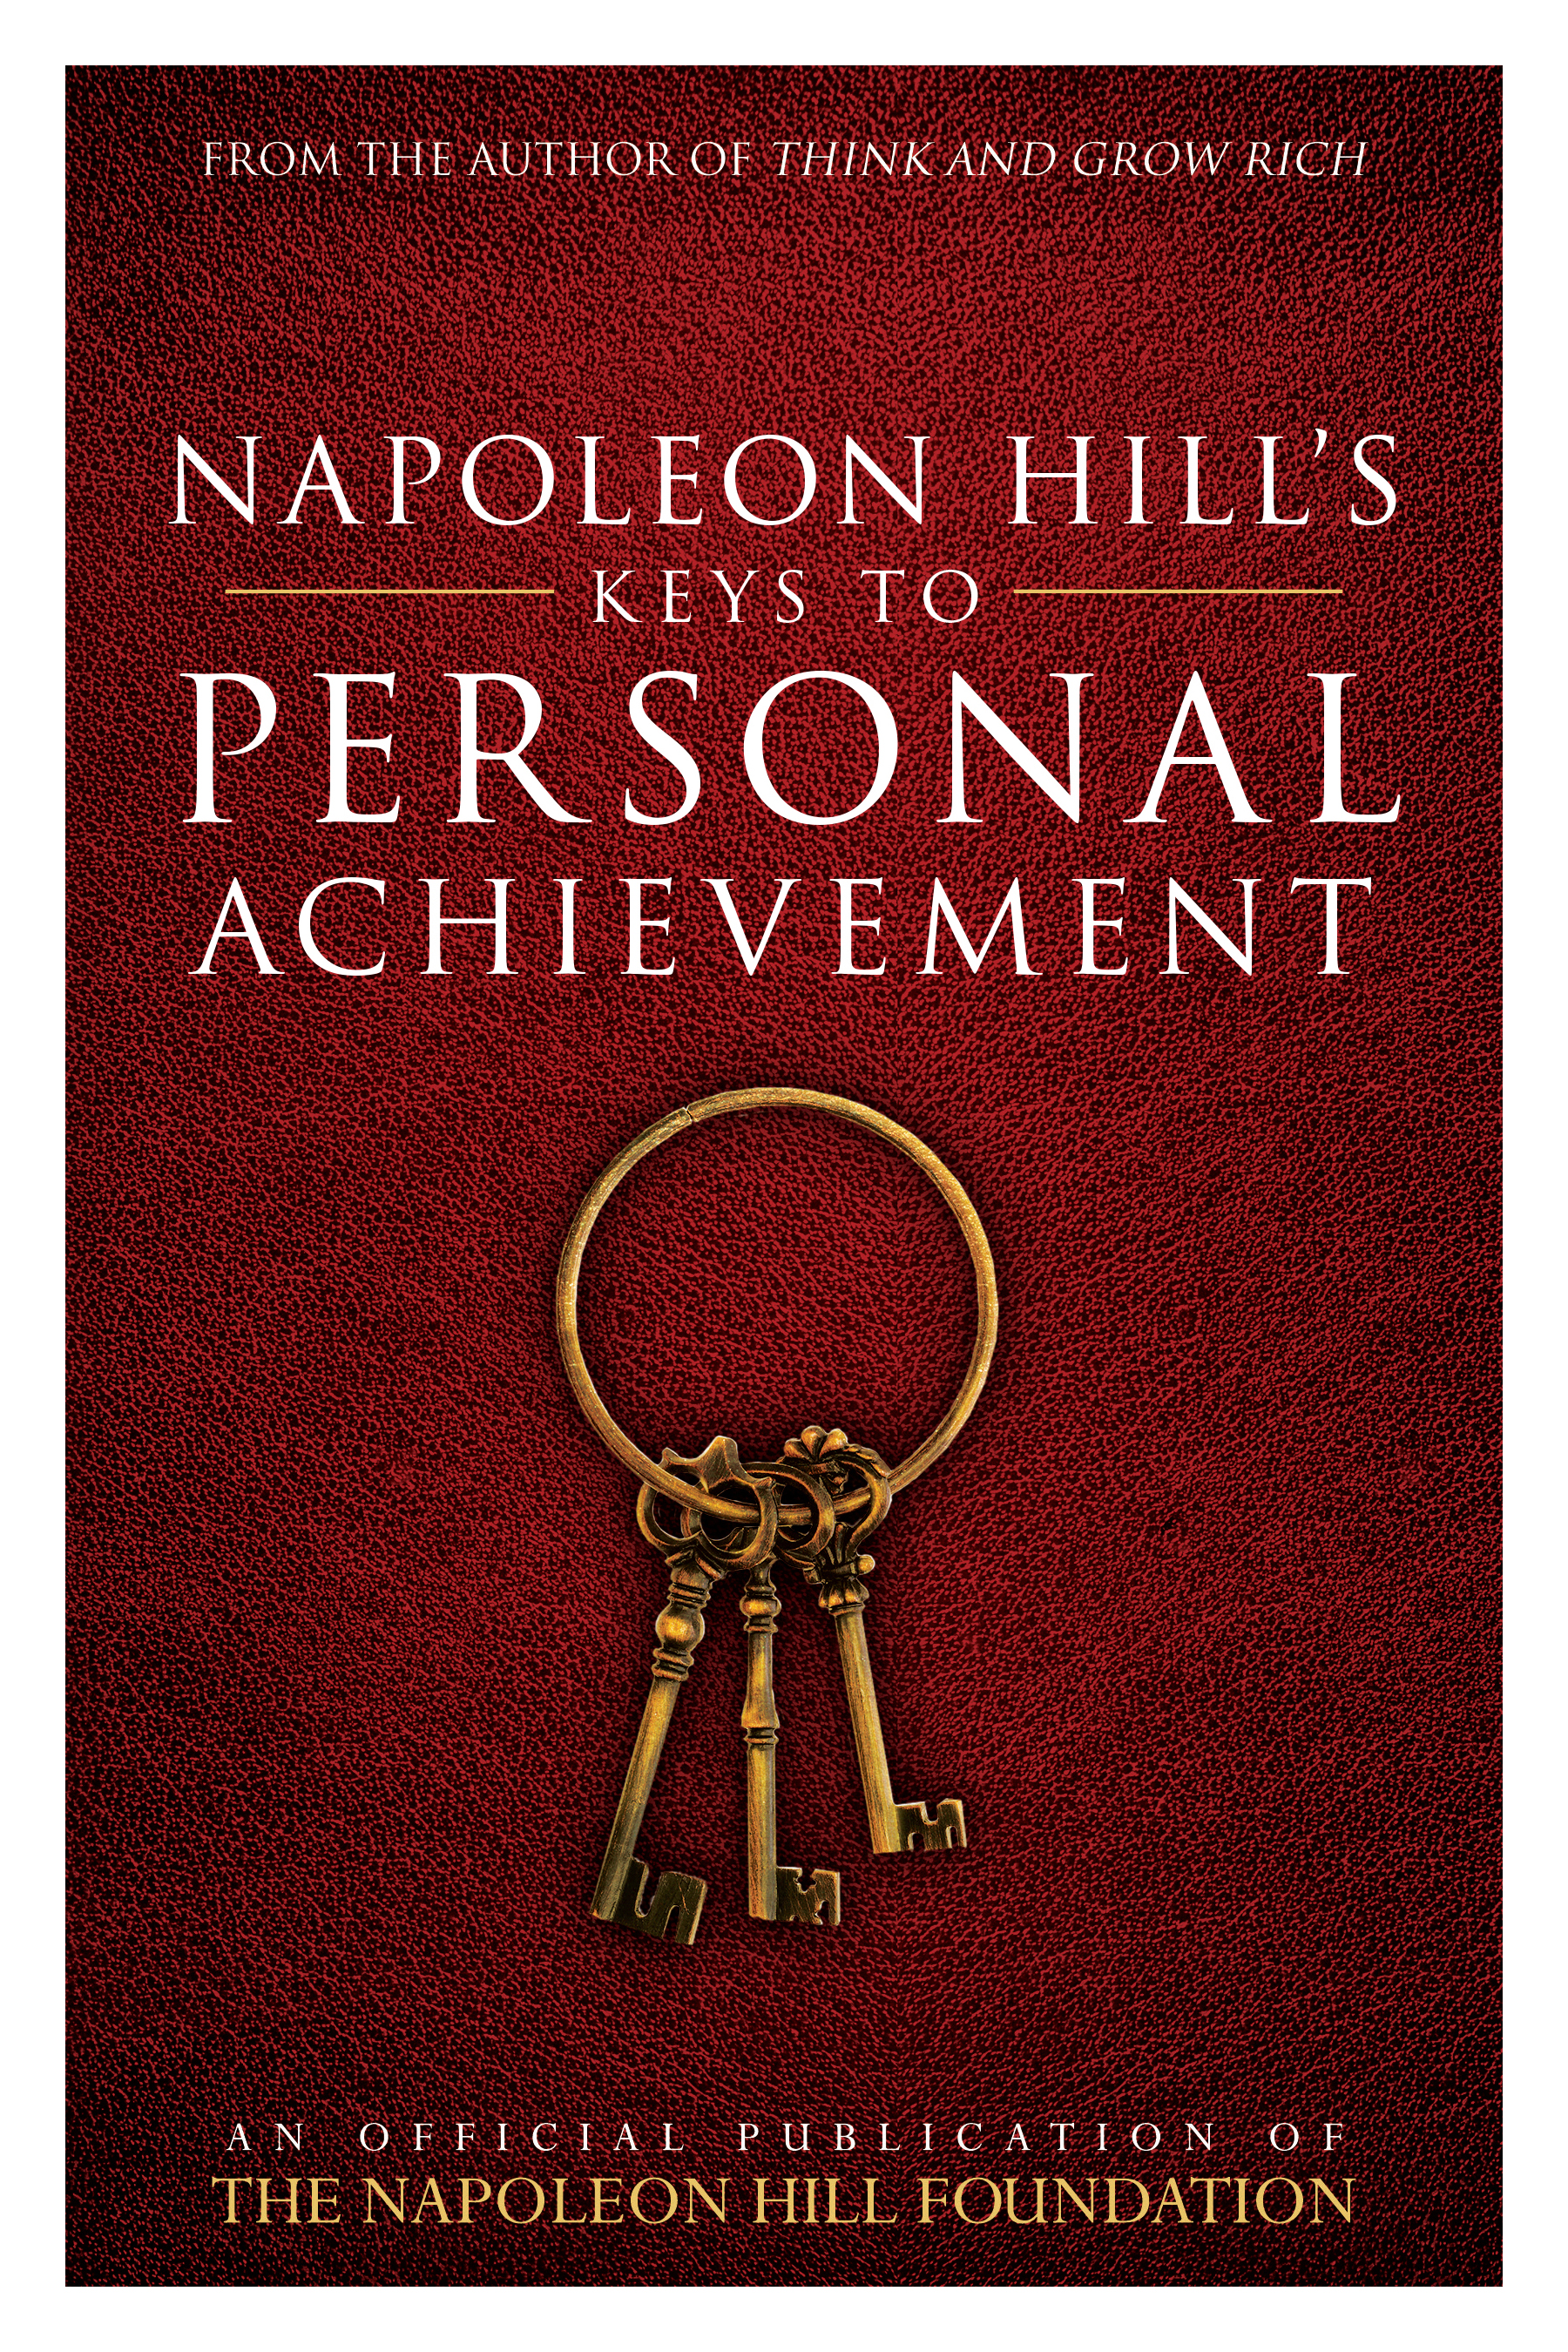 Napoleon_Hill's_Keys_to_Personal_Achievement.jpg